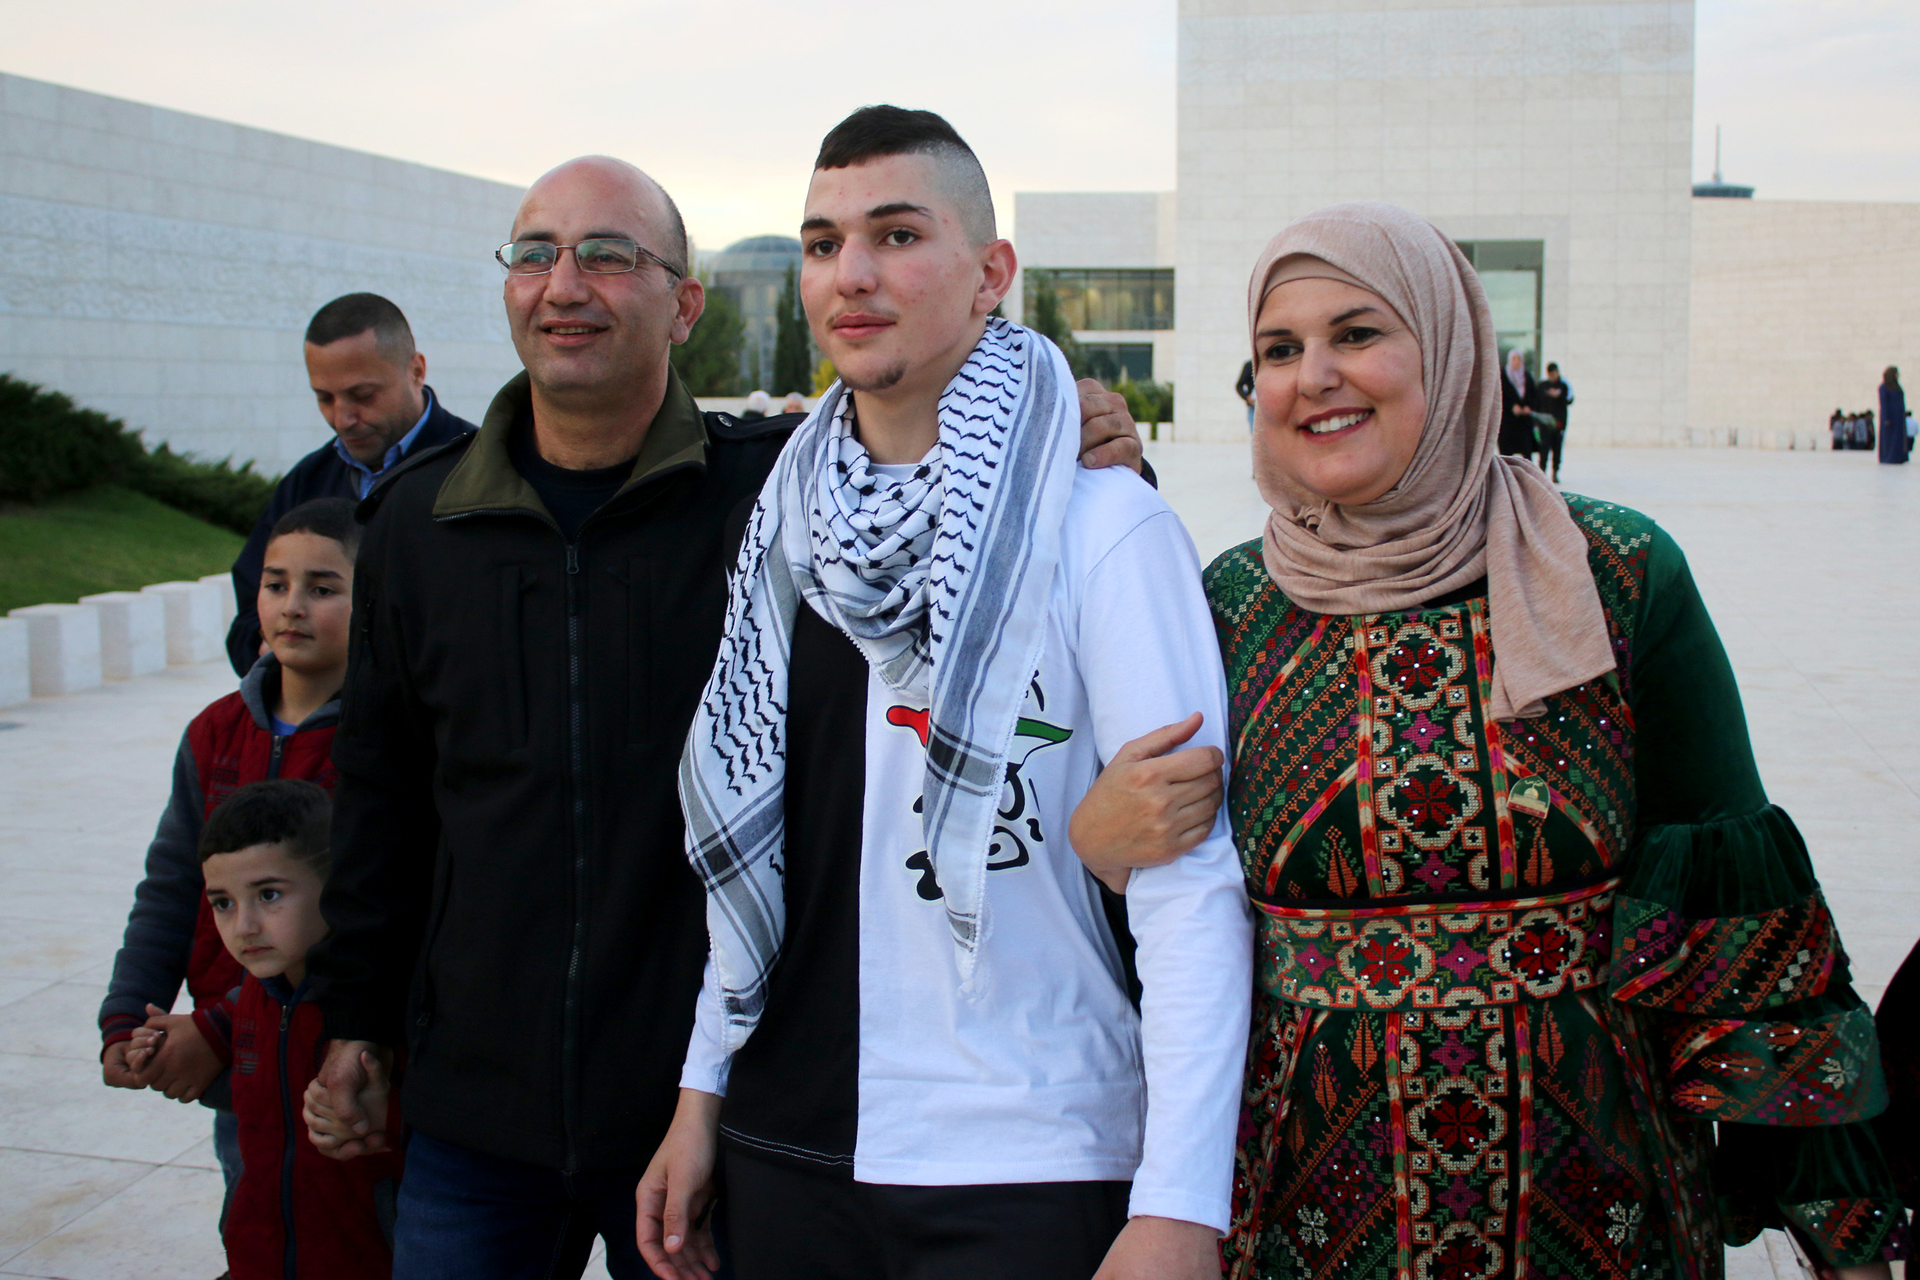 The family of Shadi Farrah, 15, greets him on November 29, 2018 as he arrives in Ramallah city after serving almost three years in an Israeli prison. (Photo: ActiveStills / Ahmad Al-Bazz)